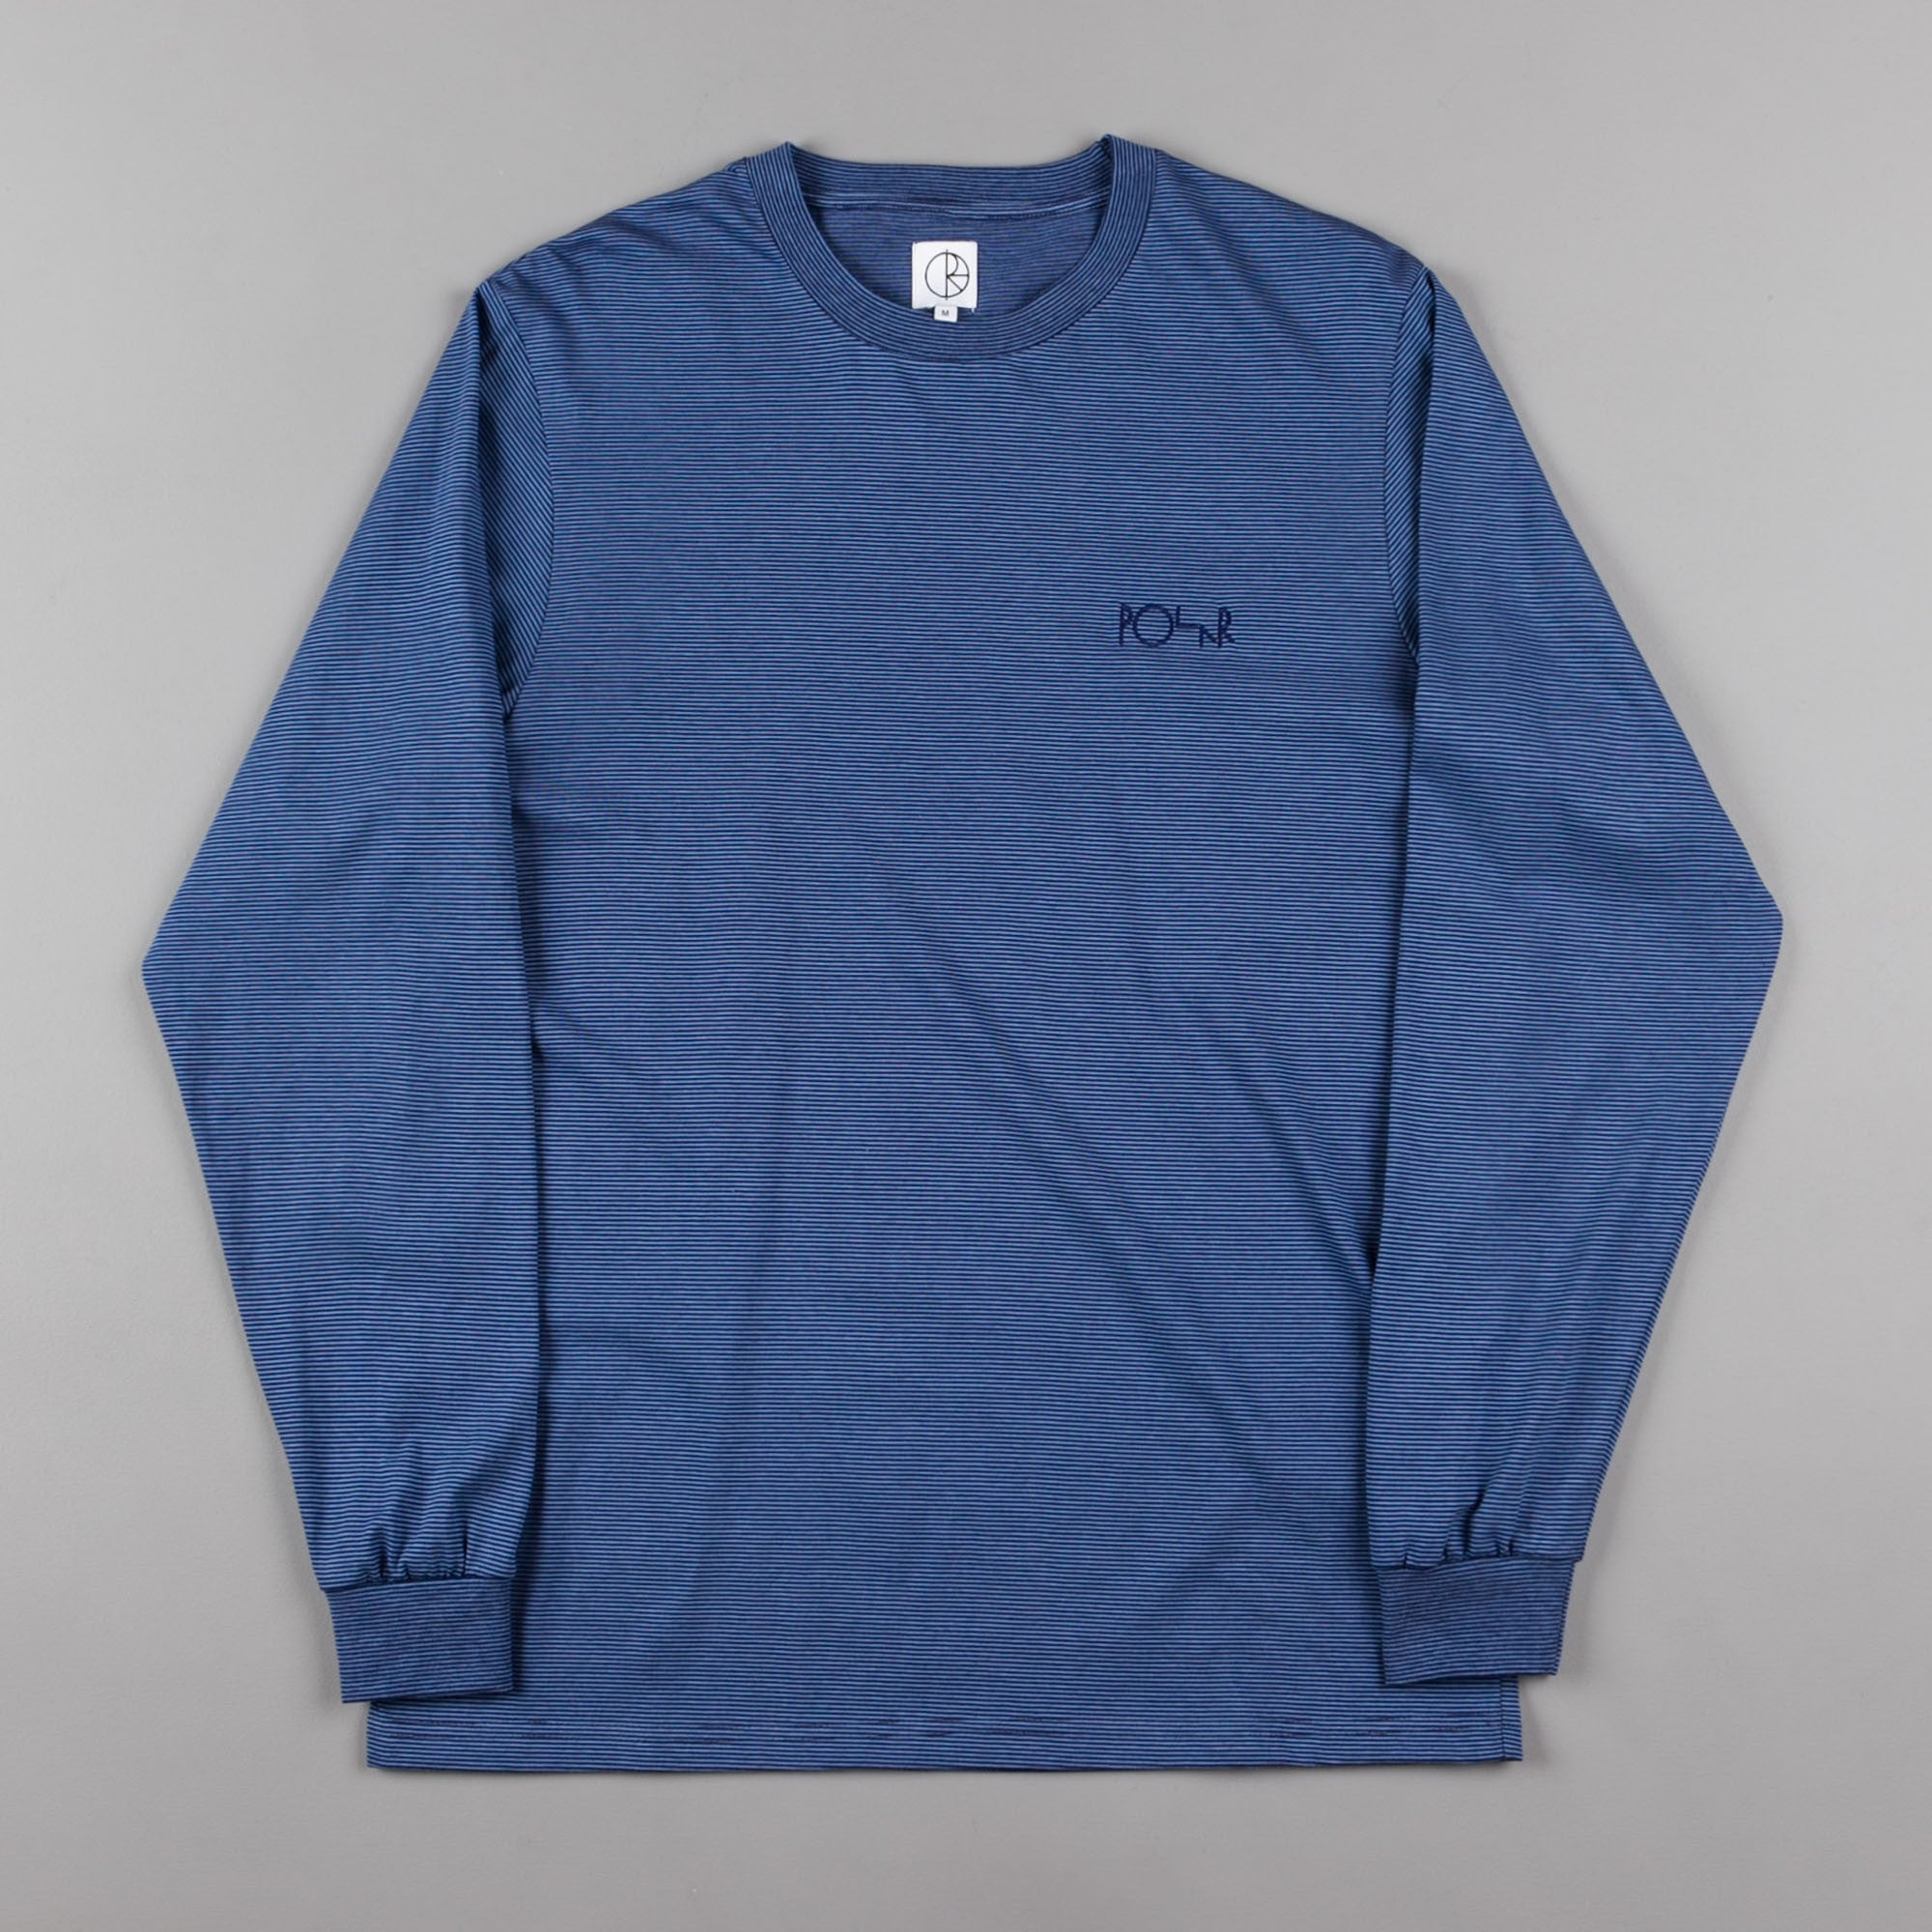 Polar Micro Stripe Long Sleeve T-Shirt - Navy / Dusty Blue